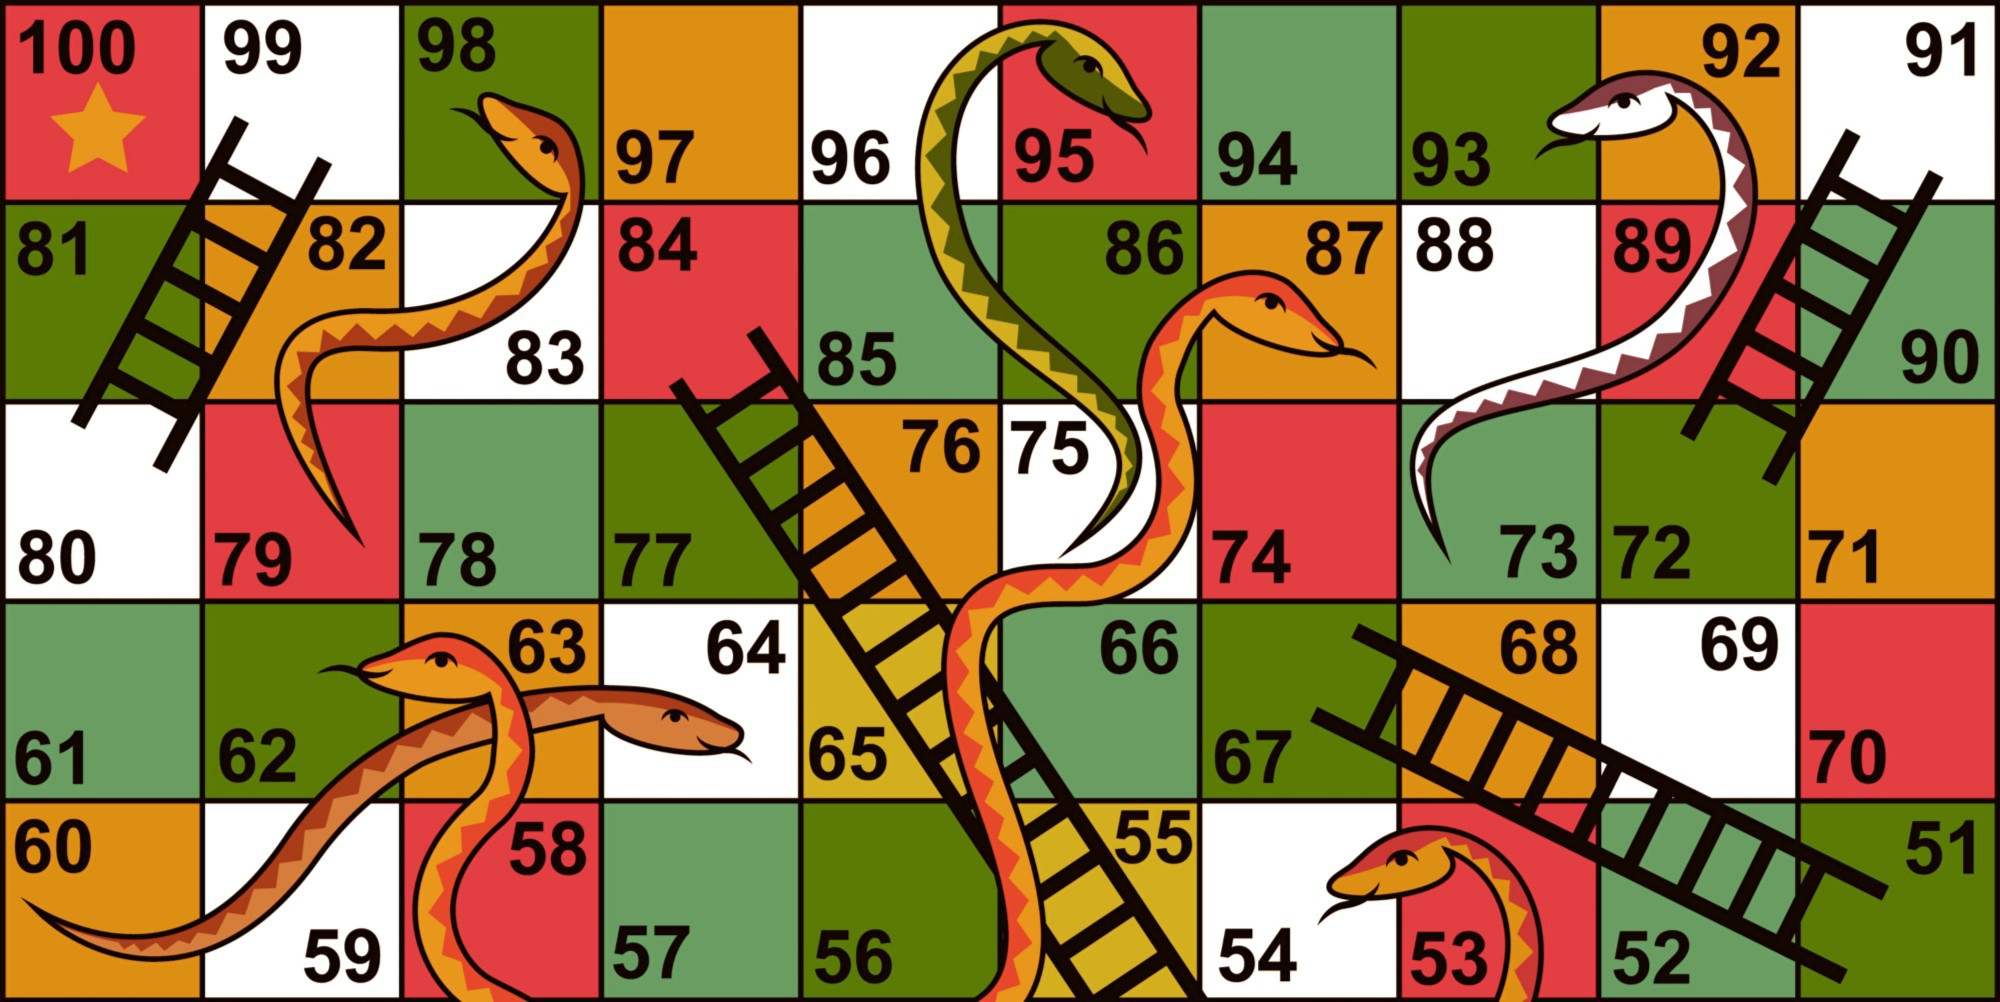 Imagine the game Snakes and Ladders, but every time the